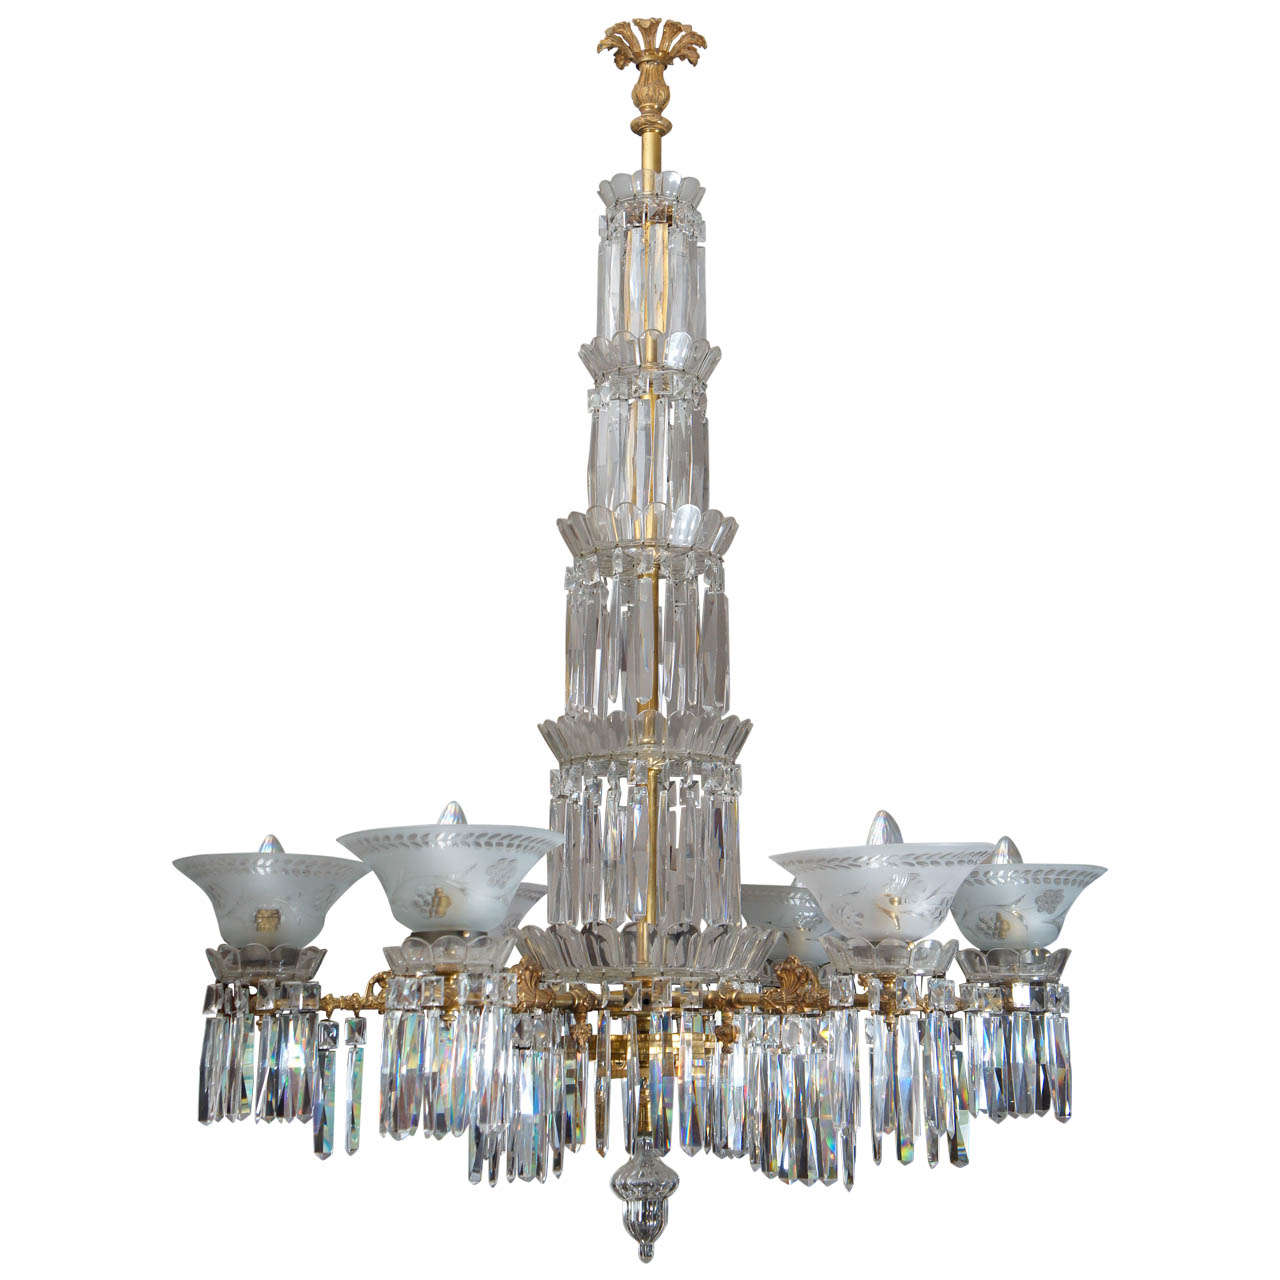 19th c american cut crystal and gilt bronze 6 light gasolier american cut crystal and gilt bronze 6 light gasolierchandelier for sale mozeypictures Gallery